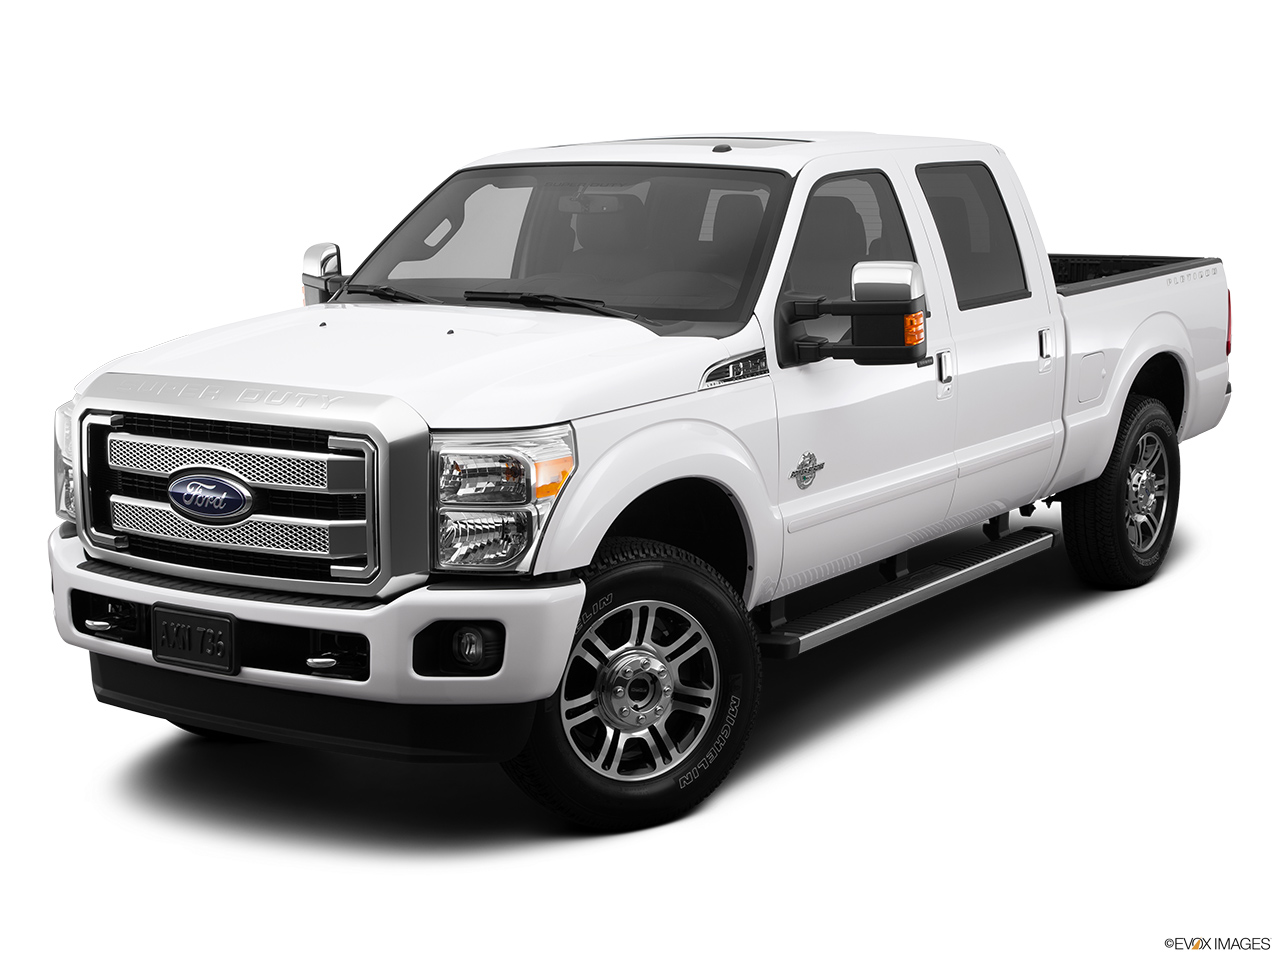 2004 ford f 250 fuel economy submited images